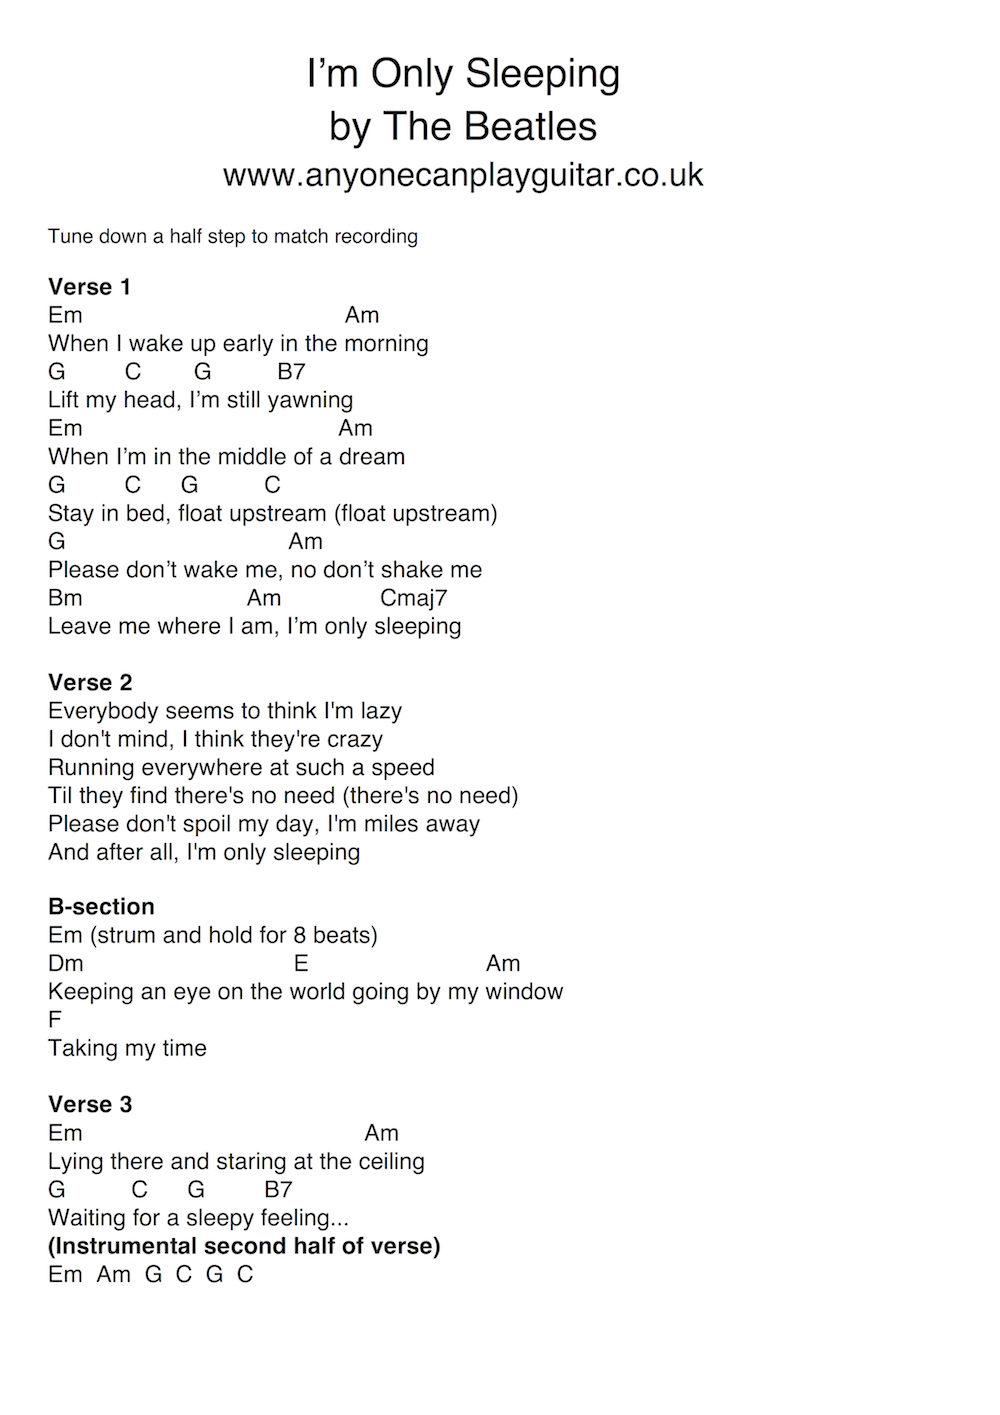 27 song im only sleeping anyone can play guitar listen to the original and use the chordlyric chart download here to piece together the whole song once you can play the basic parts hexwebz Image collections